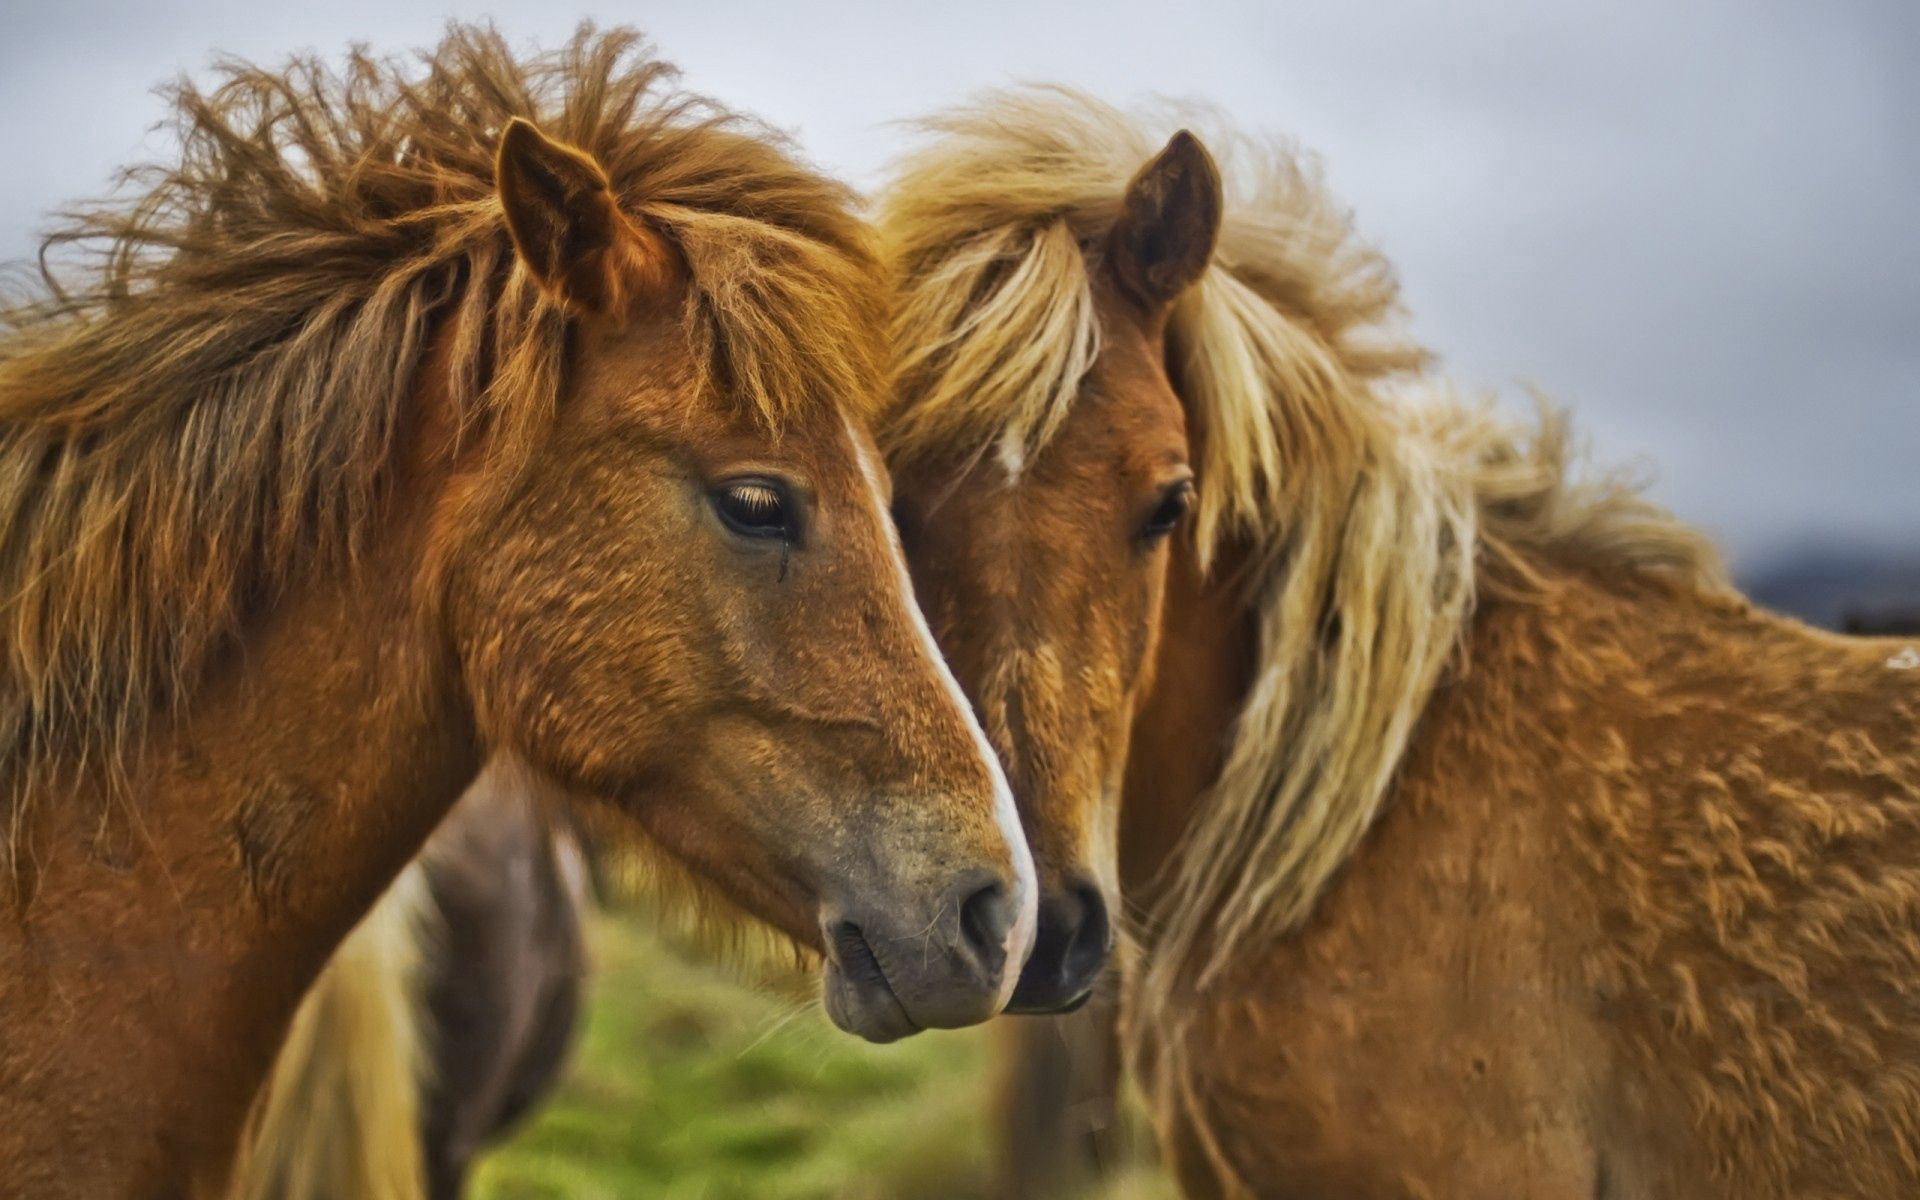 67786 download wallpaper Animals, Horses, Couple, Pair, Care, Tenderness screensavers and pictures for free